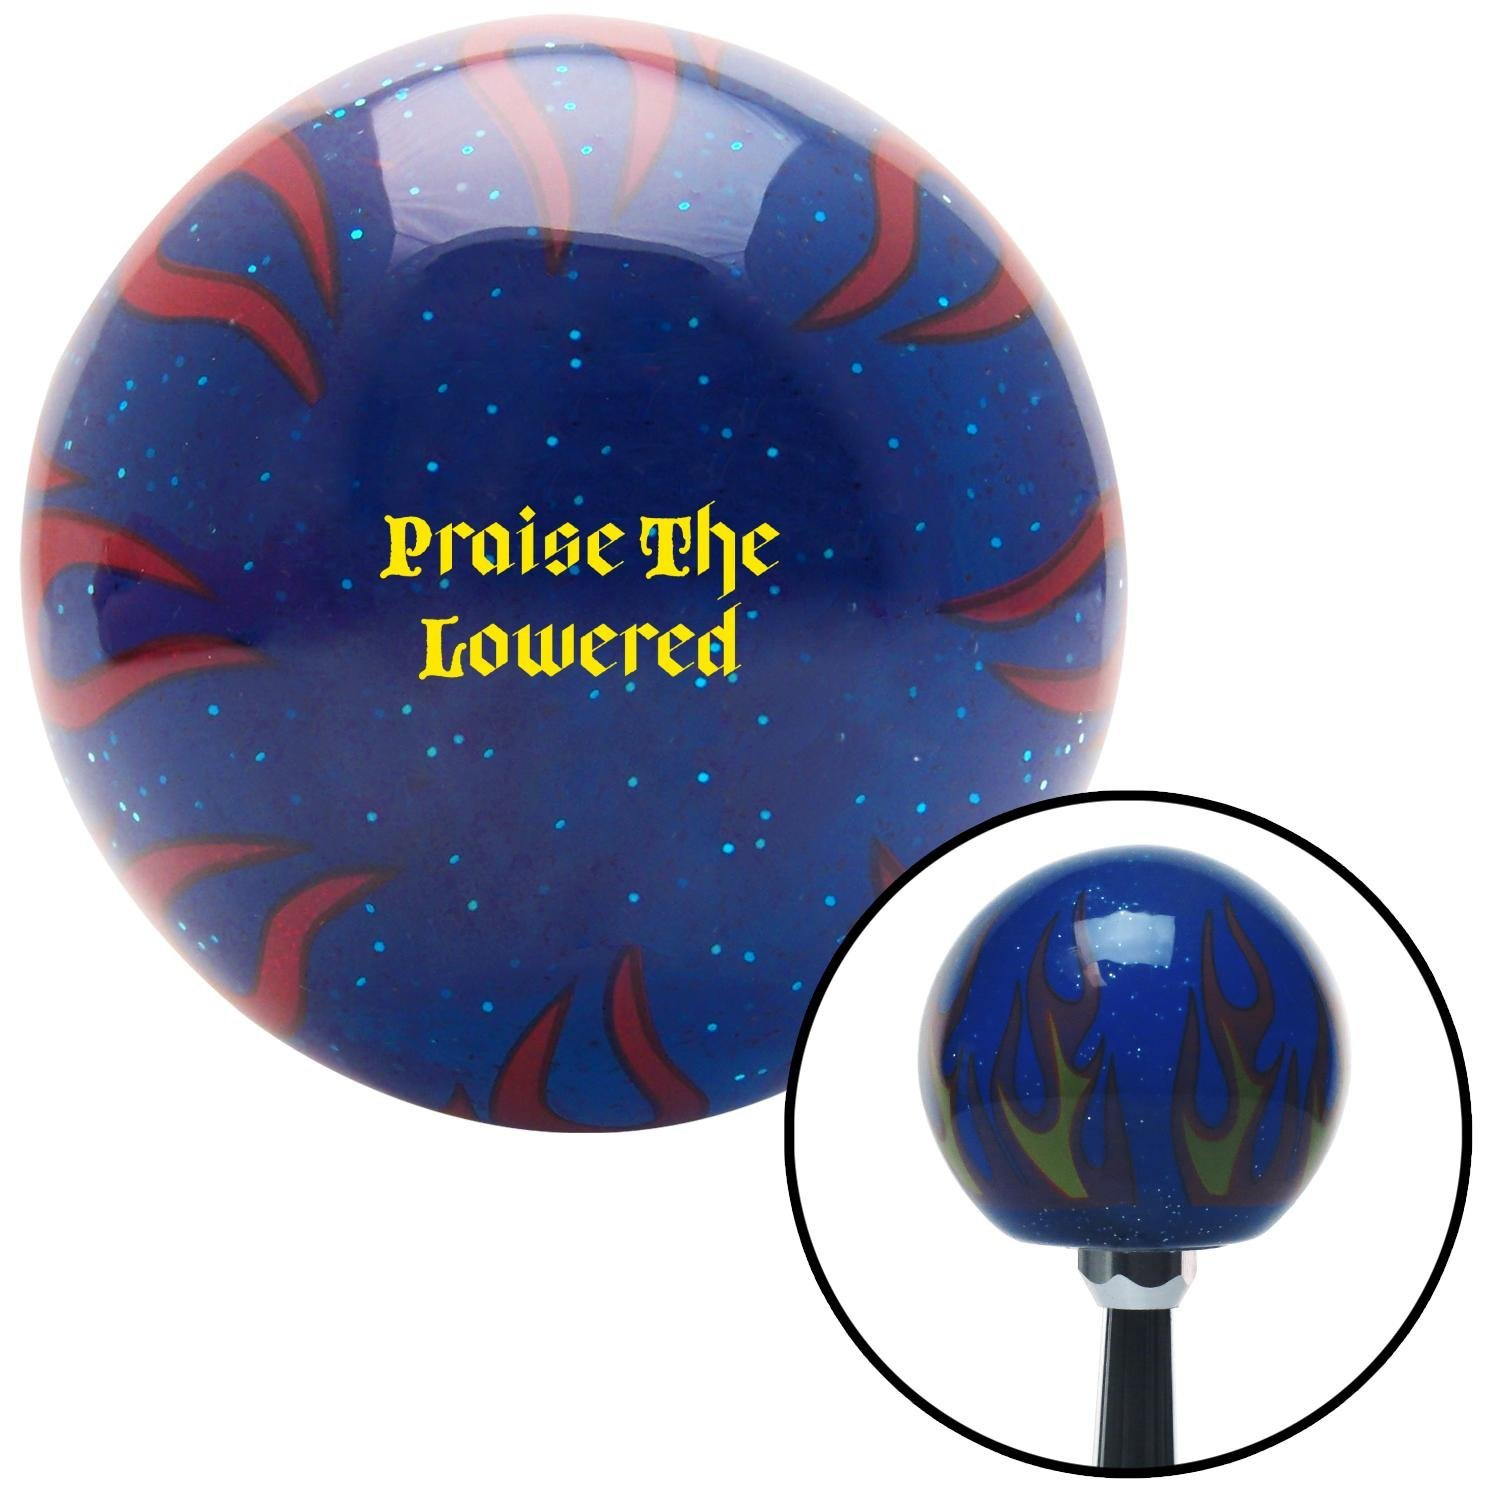 American Shifter 298604 Shift Knob Yellow Praise The Lowered Blue Flame Metal Flake with M16 x 1.5 Insert